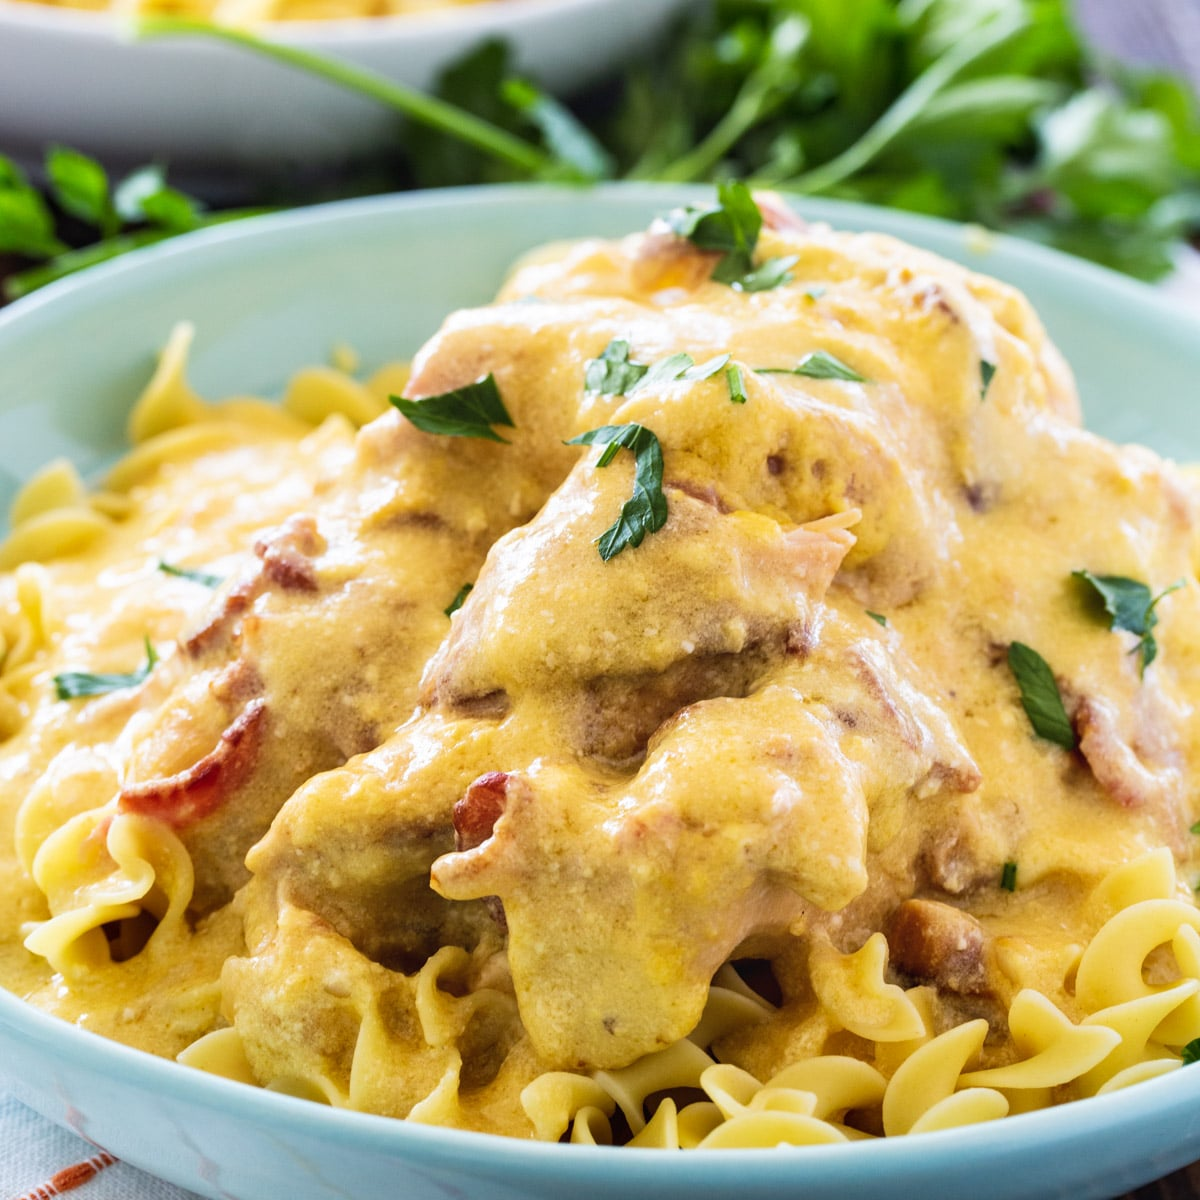 Sour Cream and Bacon Chicken over noodles in a bowl.